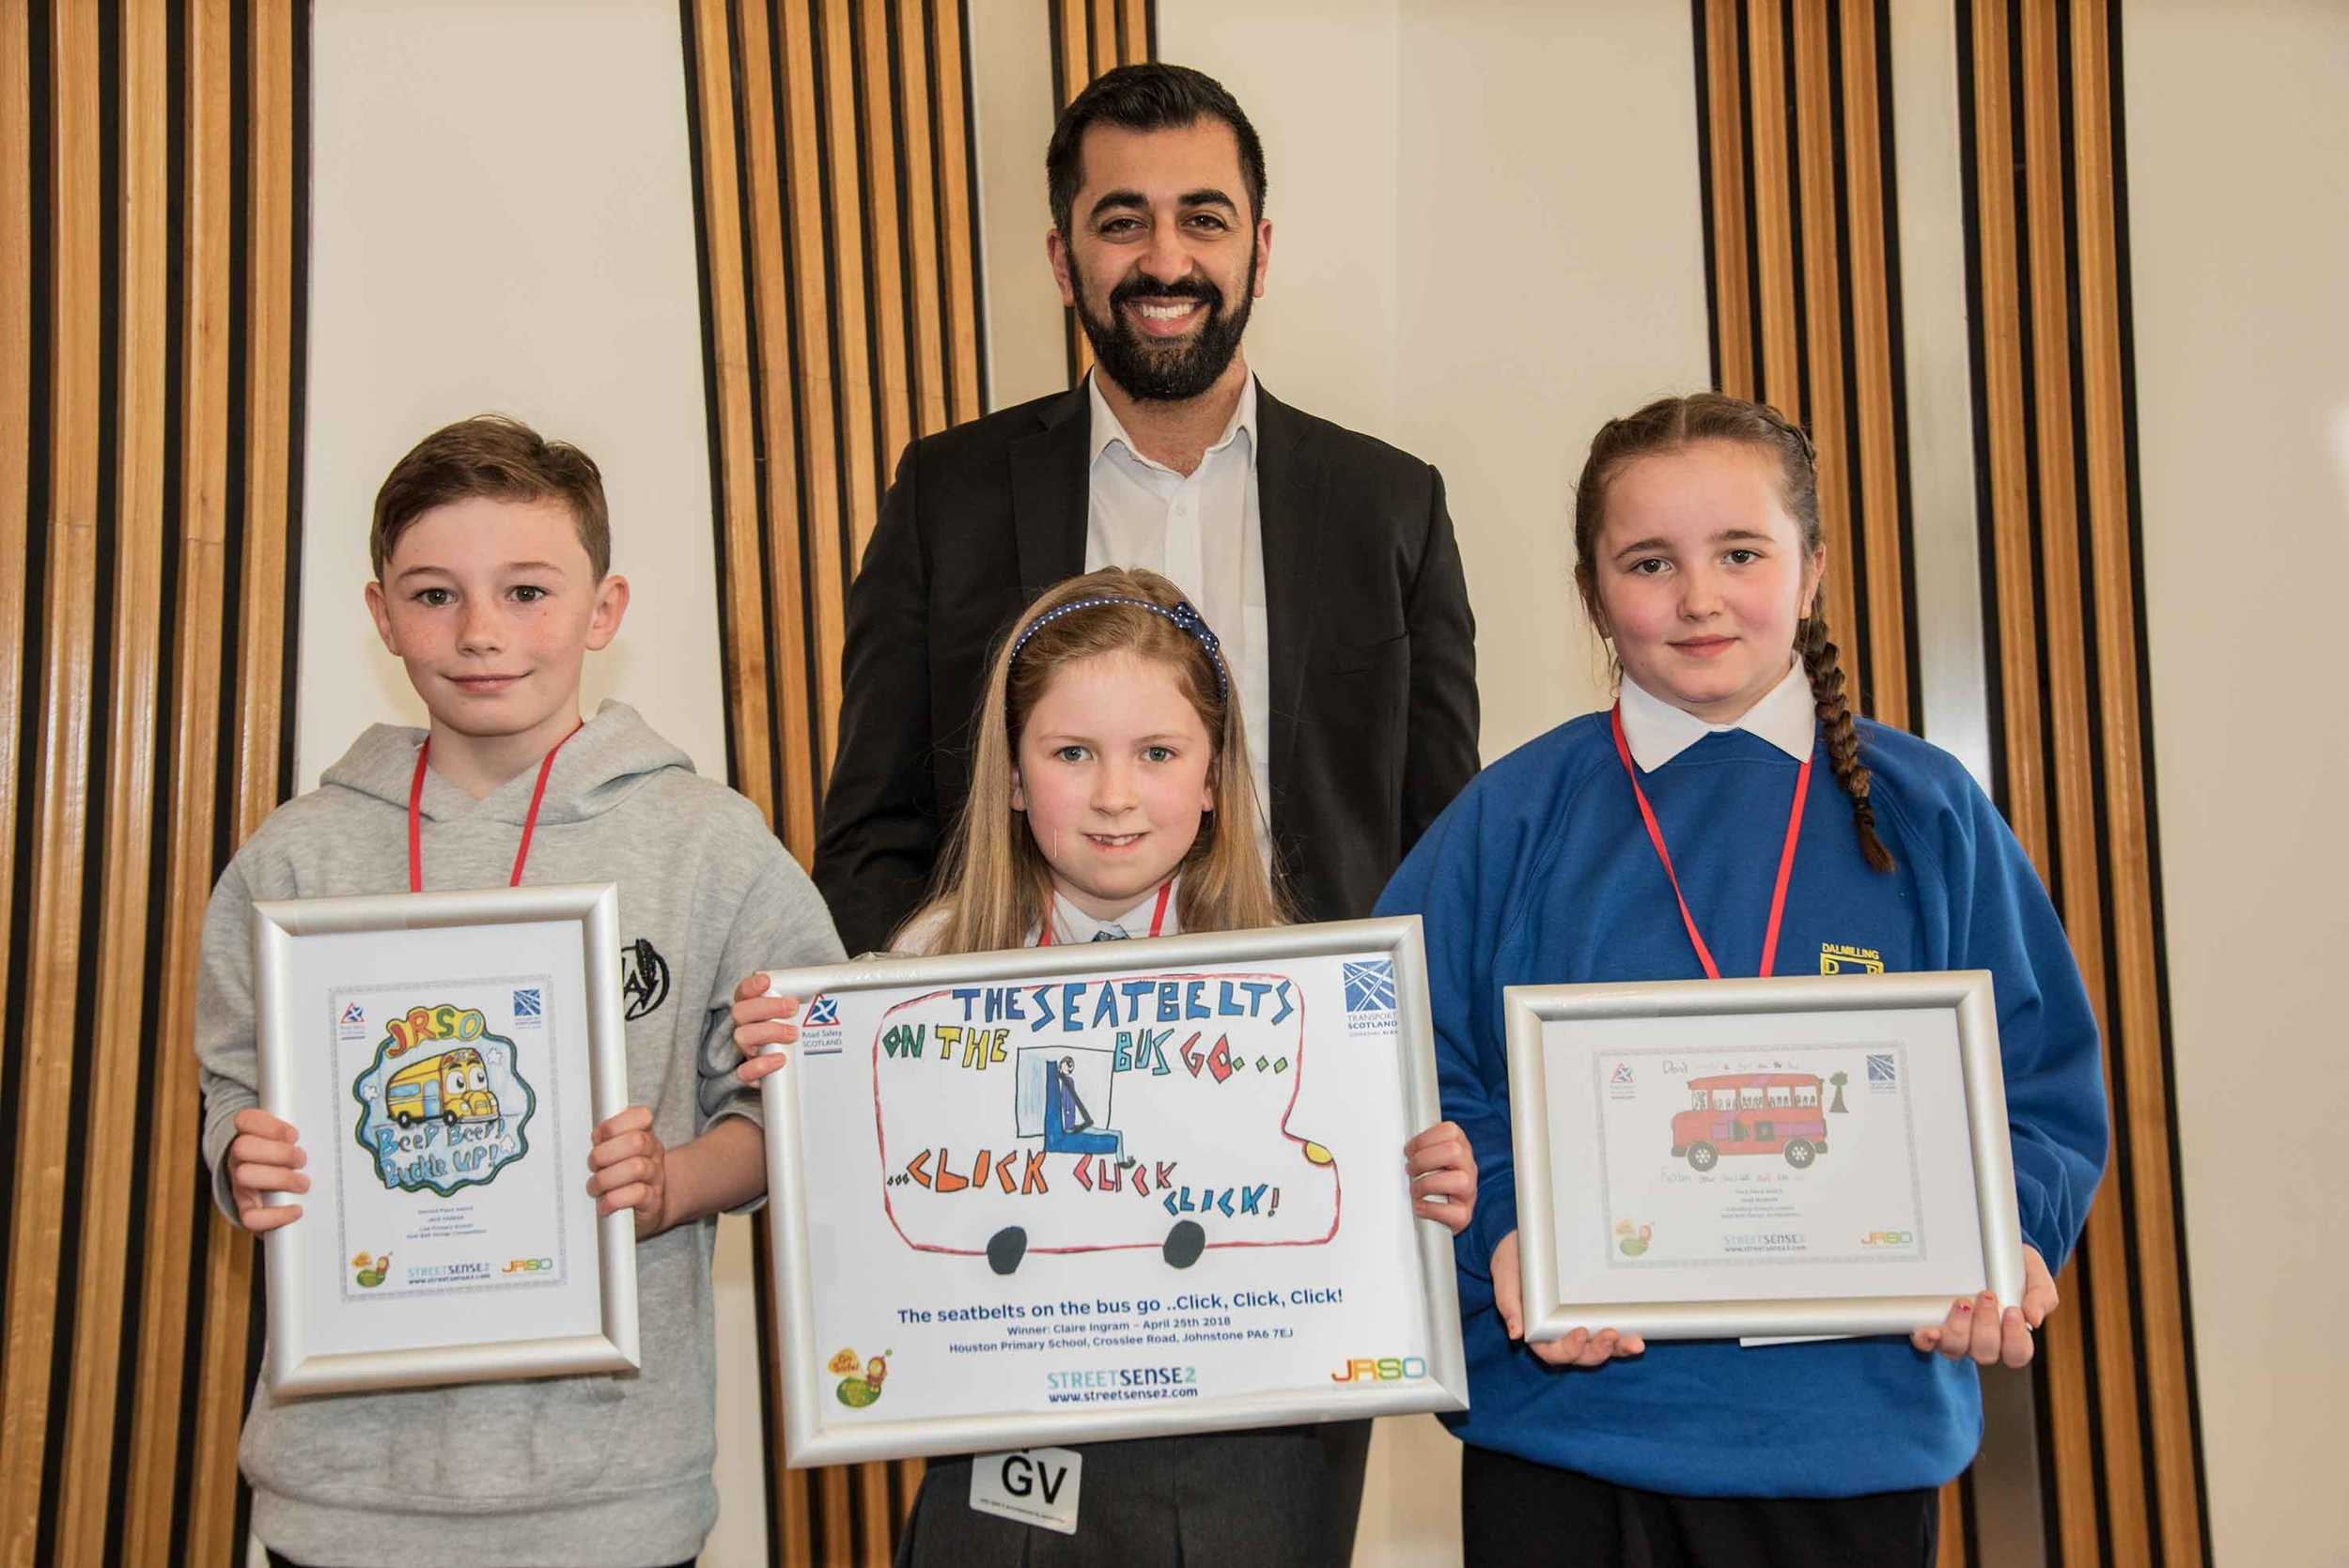 Minister for Transport Humza Yousaf is pictured with the finalists of the Seat Belt Design Competition who are, from left, Jack Parker, who was second, Claire Ingram, who was first, and Dion Benson, who was third. ( click on picture to enlarge)